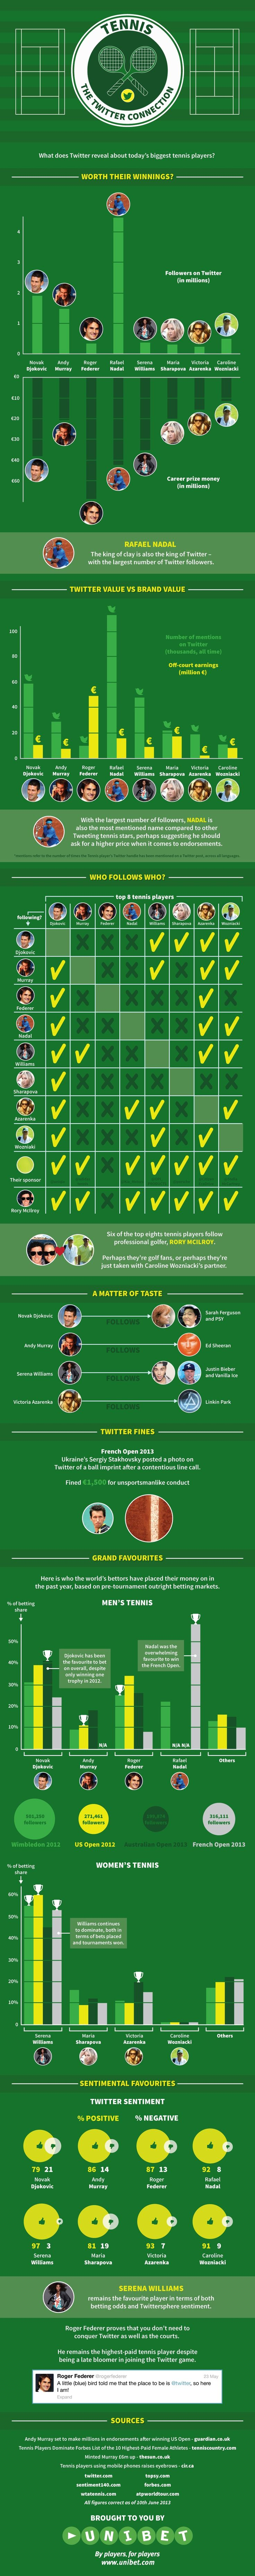 #Tennis - A beautiful infographic about the Twitter Connection.